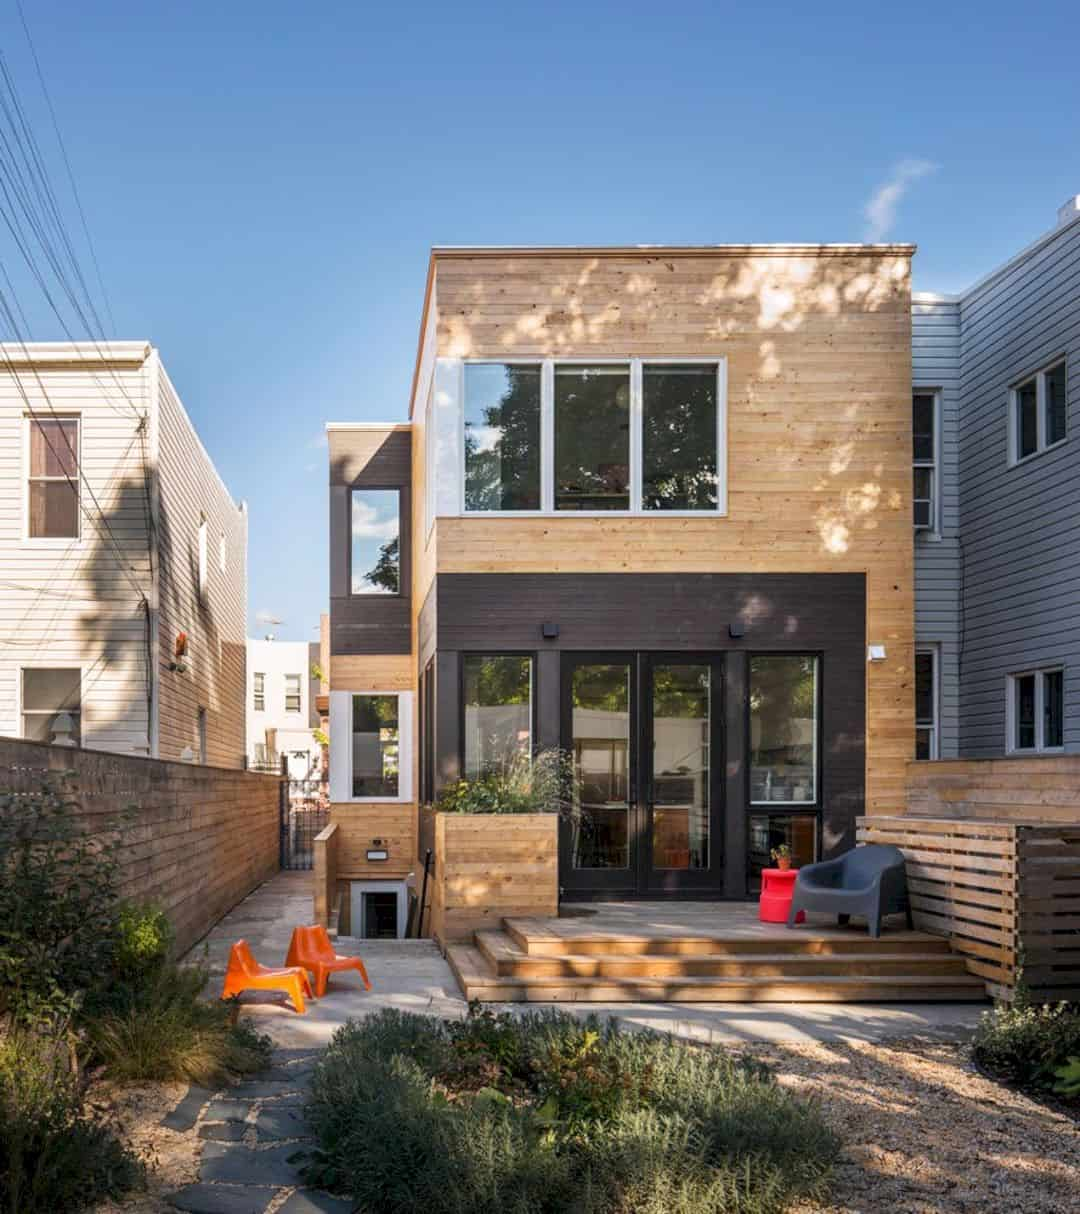 20th Street St Rowhouse An Unusual Wood Frame House In Brooklyn 13